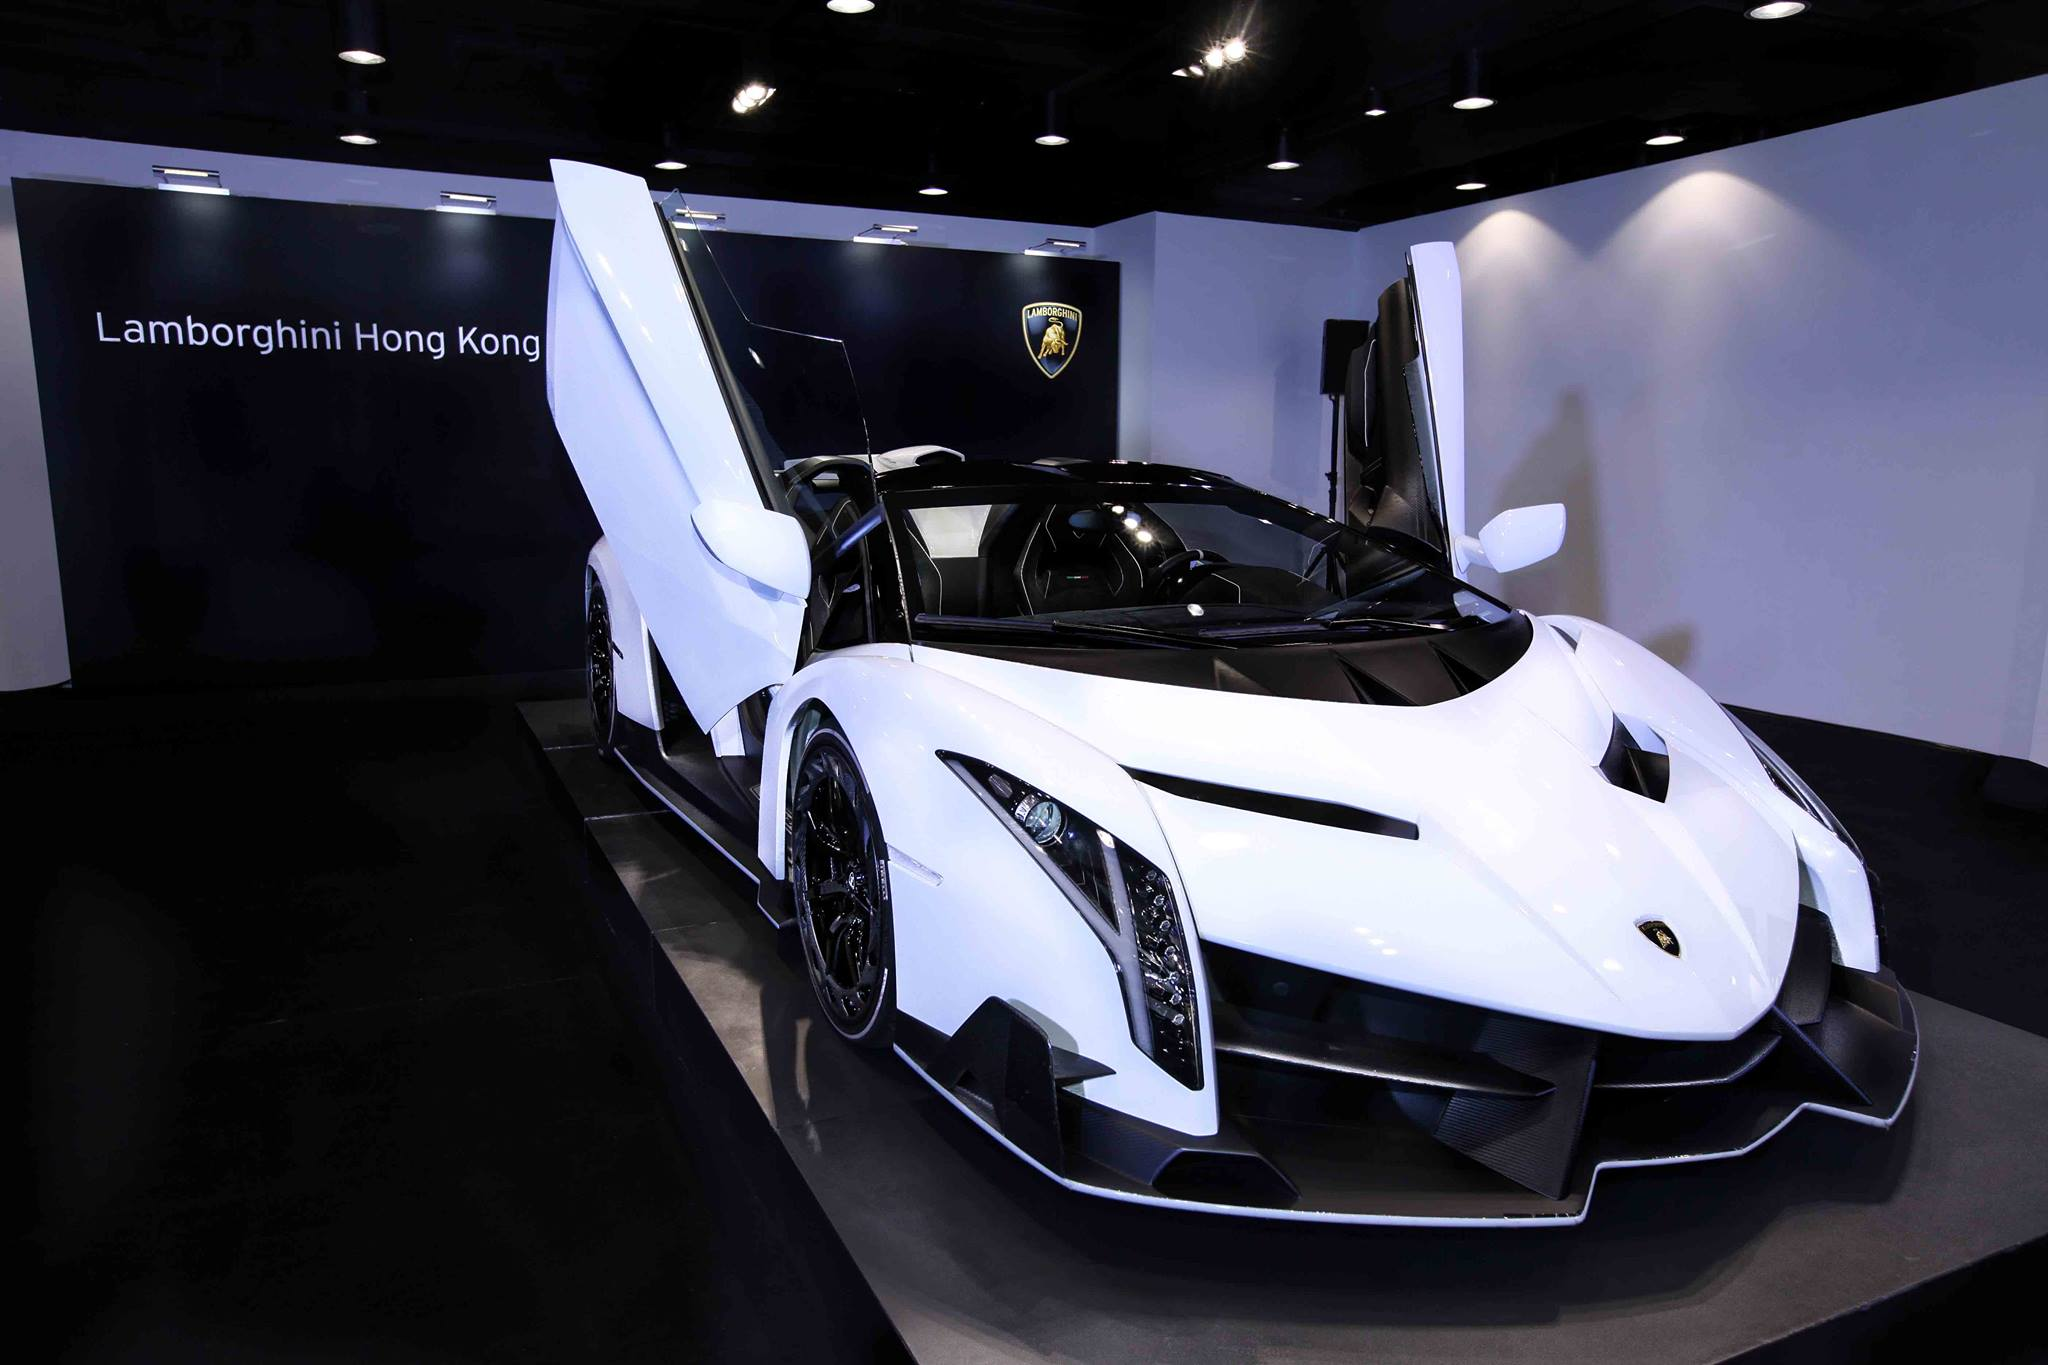 1 Of 9 Lamborghini Veneno Roadsters Delivered In Hong Kong